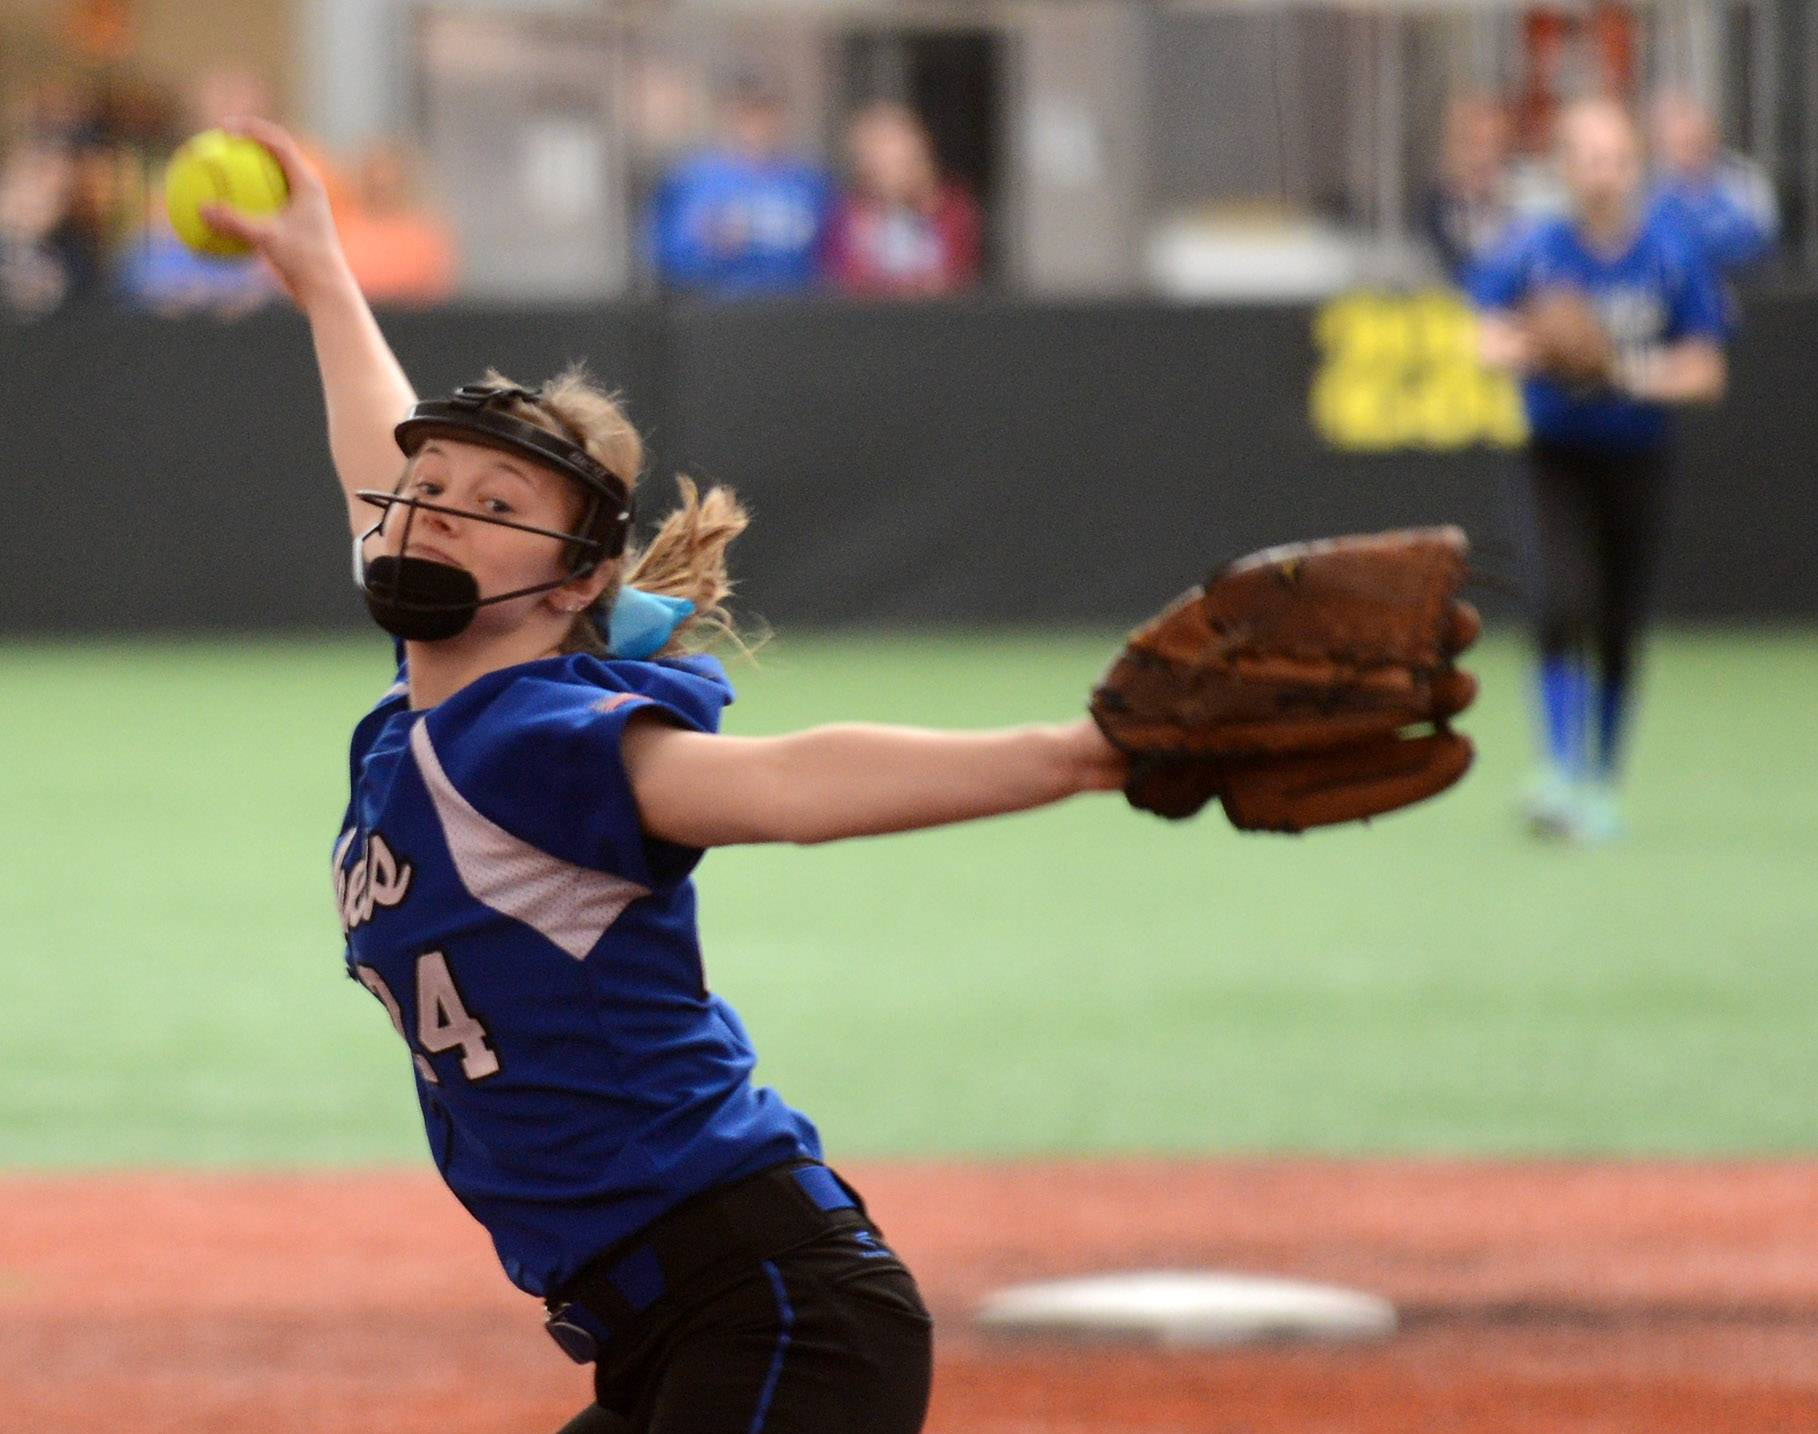 Burlington Central's Emily Kisch delivers a pitch against Waubonsie Valley during softball action in Rosemont Wednesday.